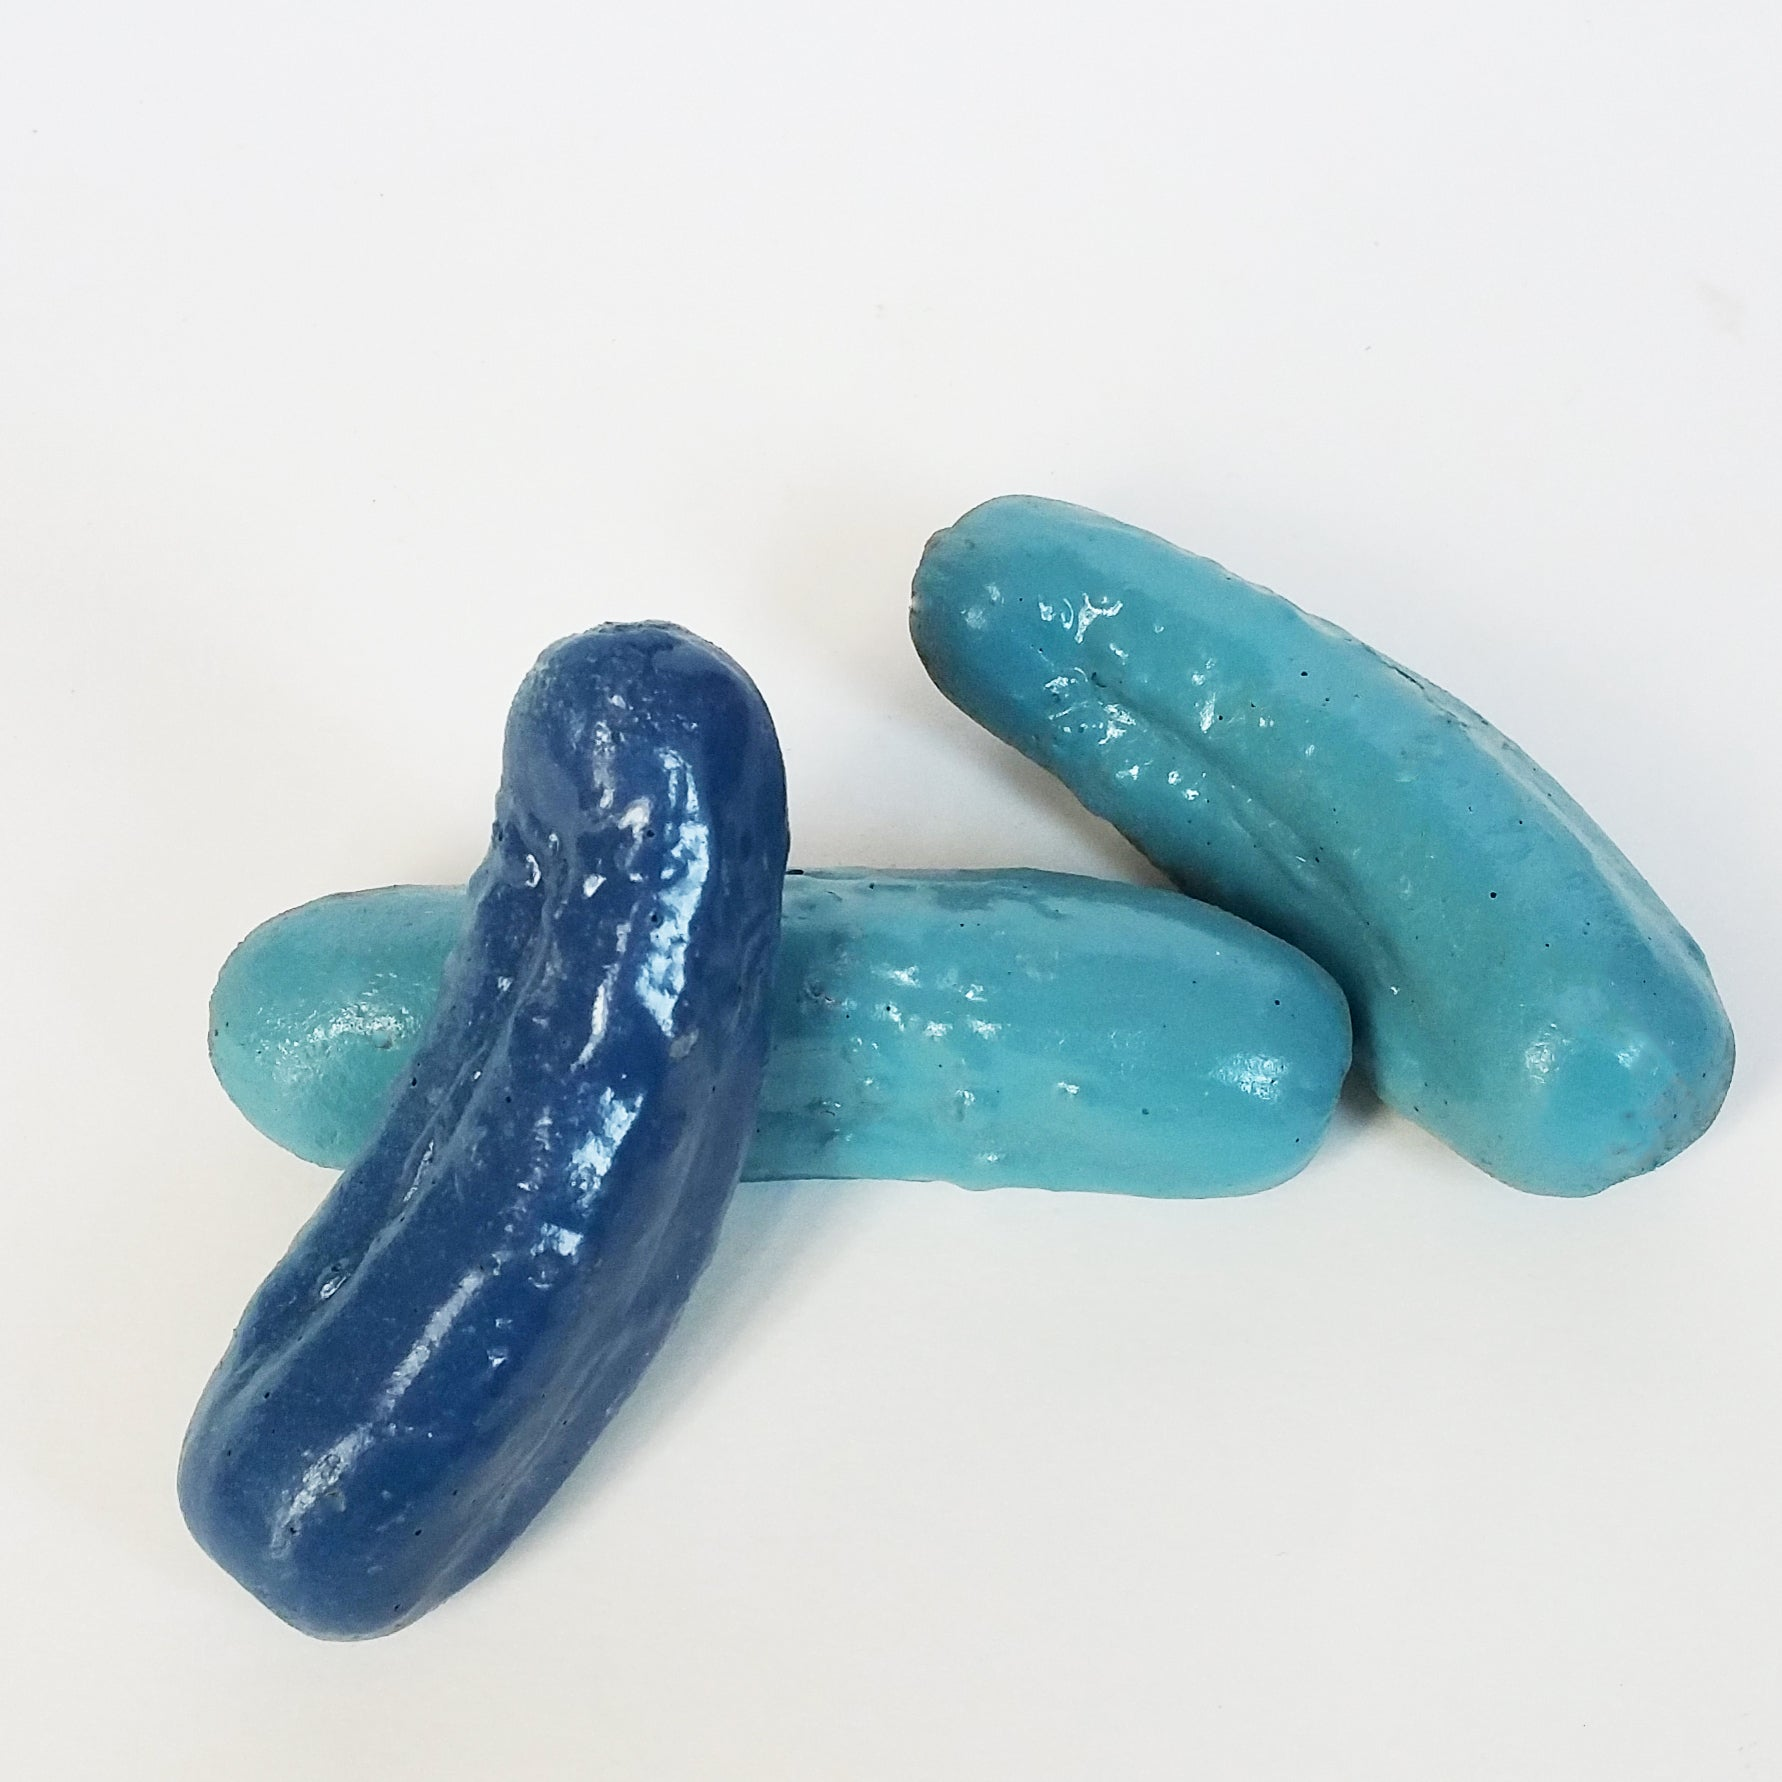 Blue Decorative Concrete Pickles Home Decor Accents